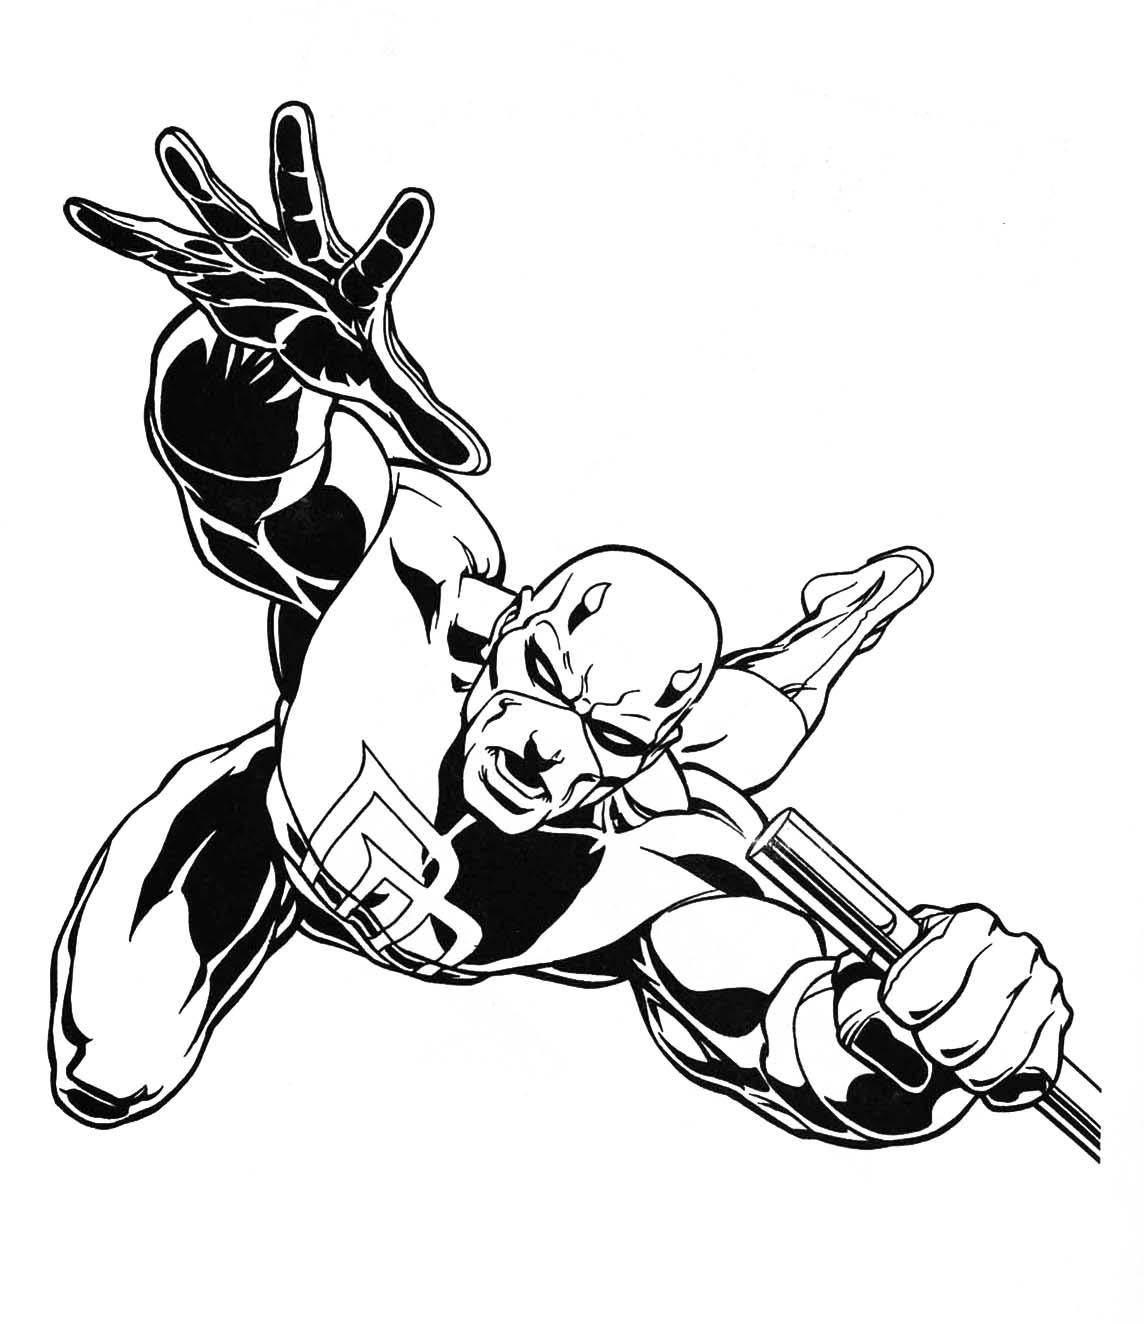 marvel coloring marvel coloring pages free download on clipartmag coloring marvel 1 1